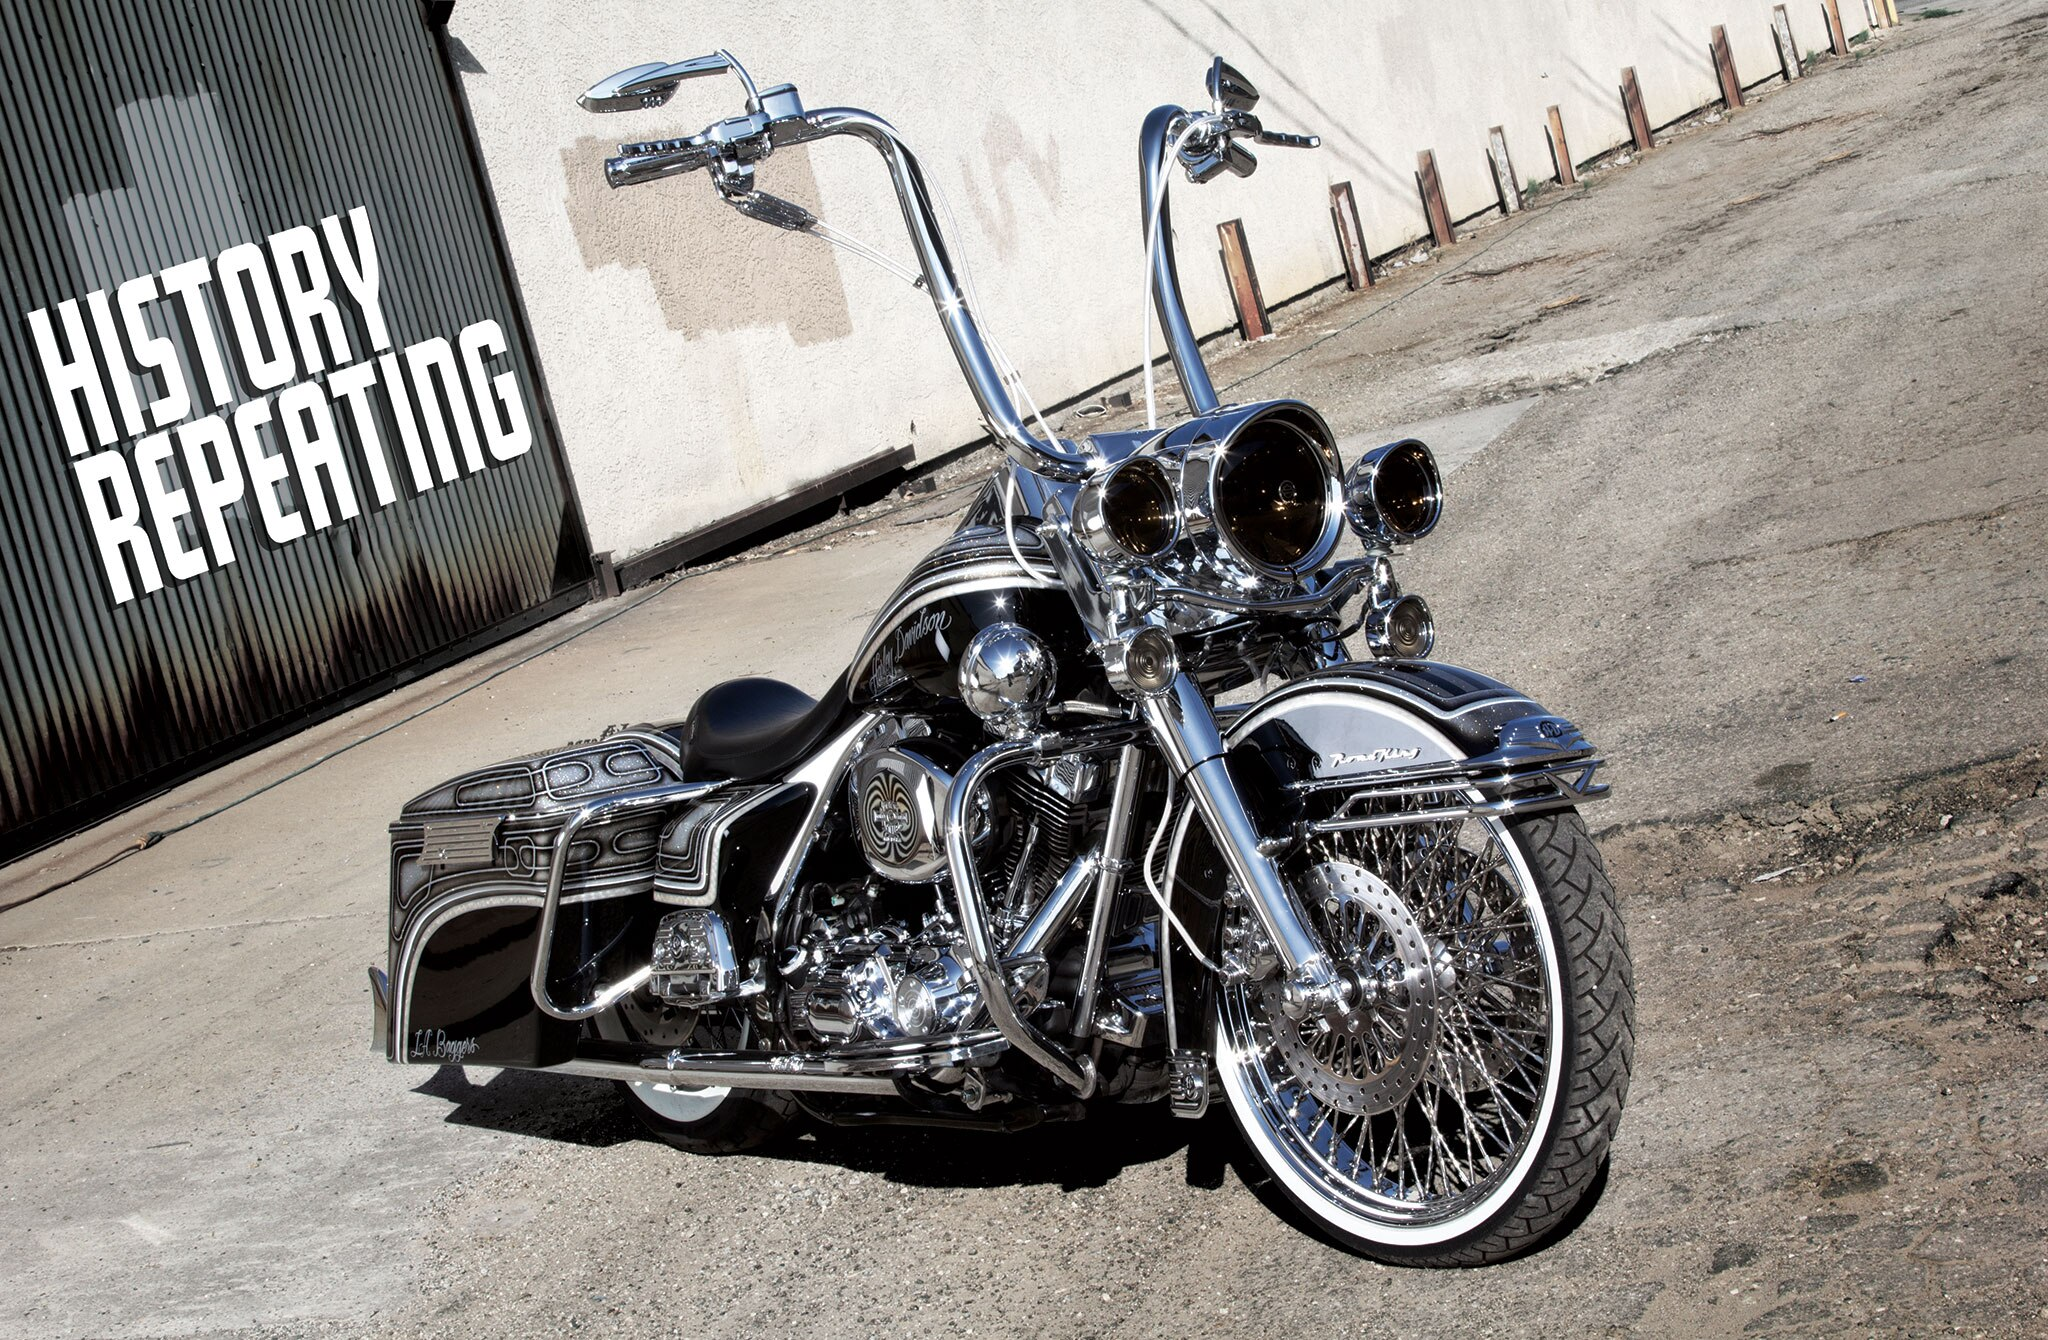 2006 Harley Davidson Road King History Repeating Paint Colors Numberedtype